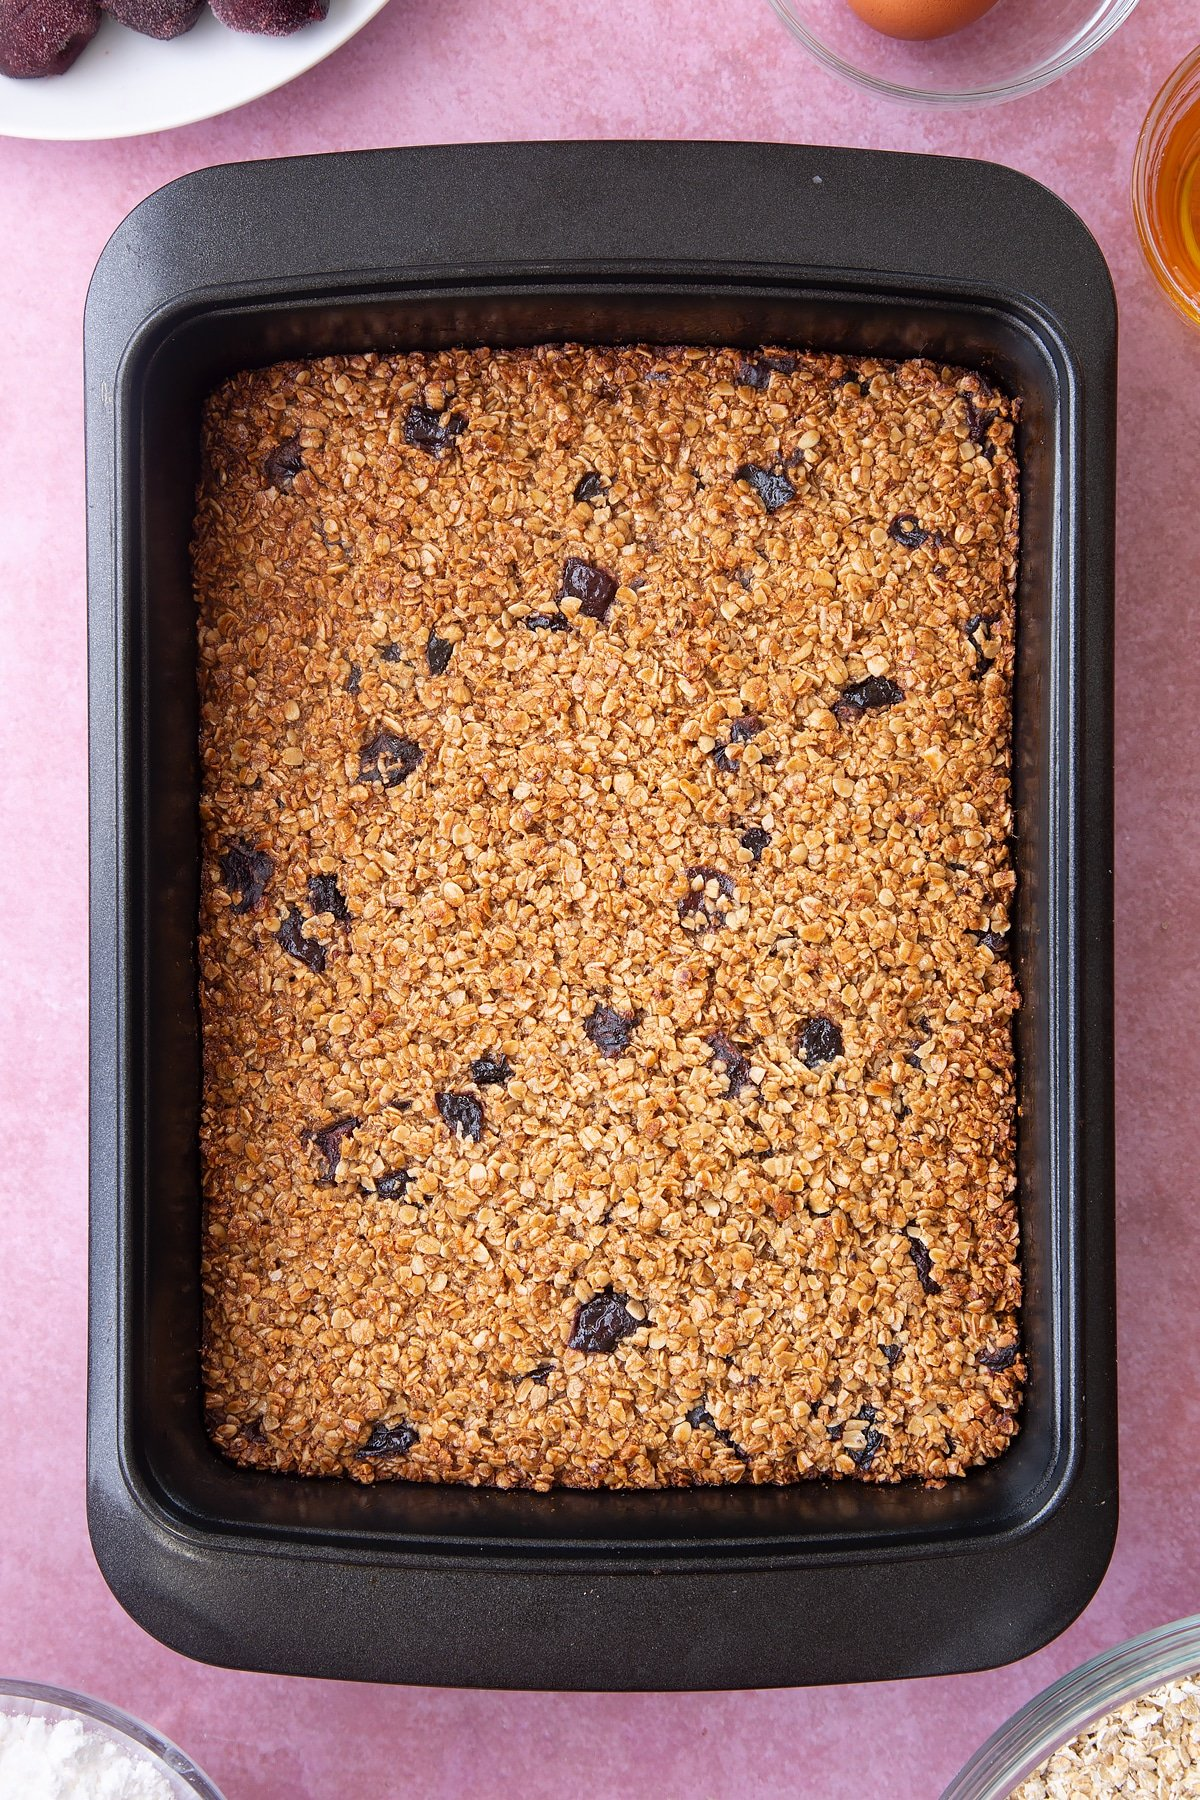 Overhead shot of cherry flapjacks in a black baking tin